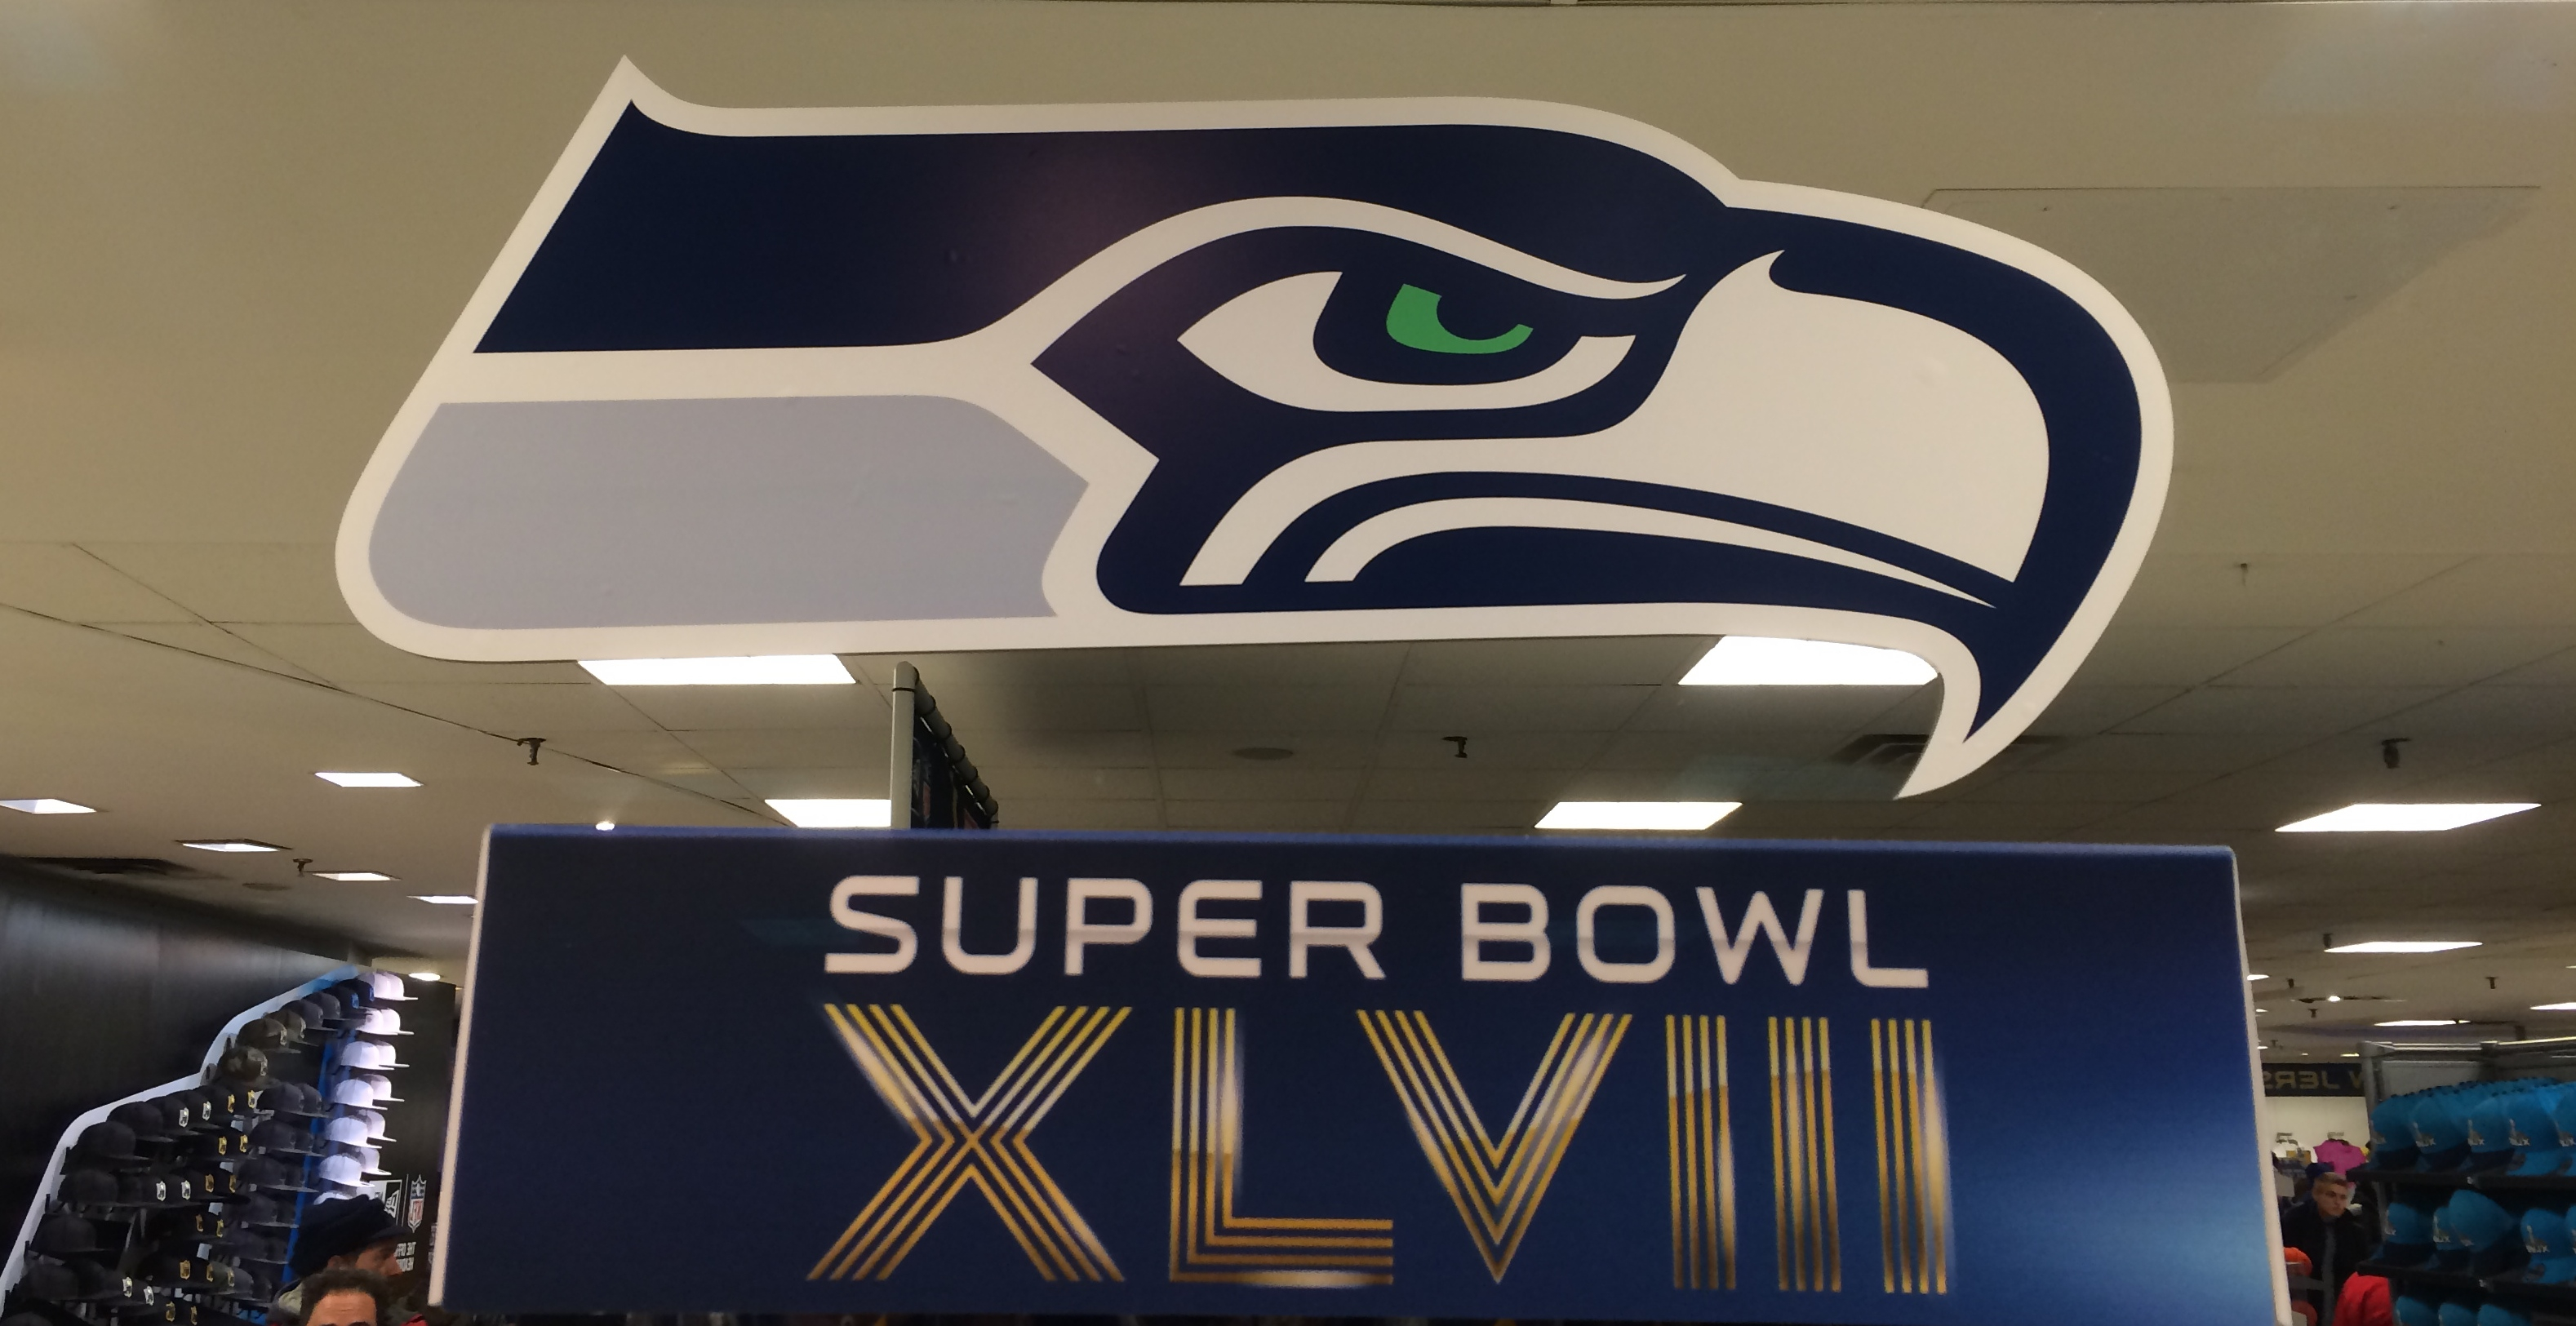 Super Bowl Clipart#1914883.